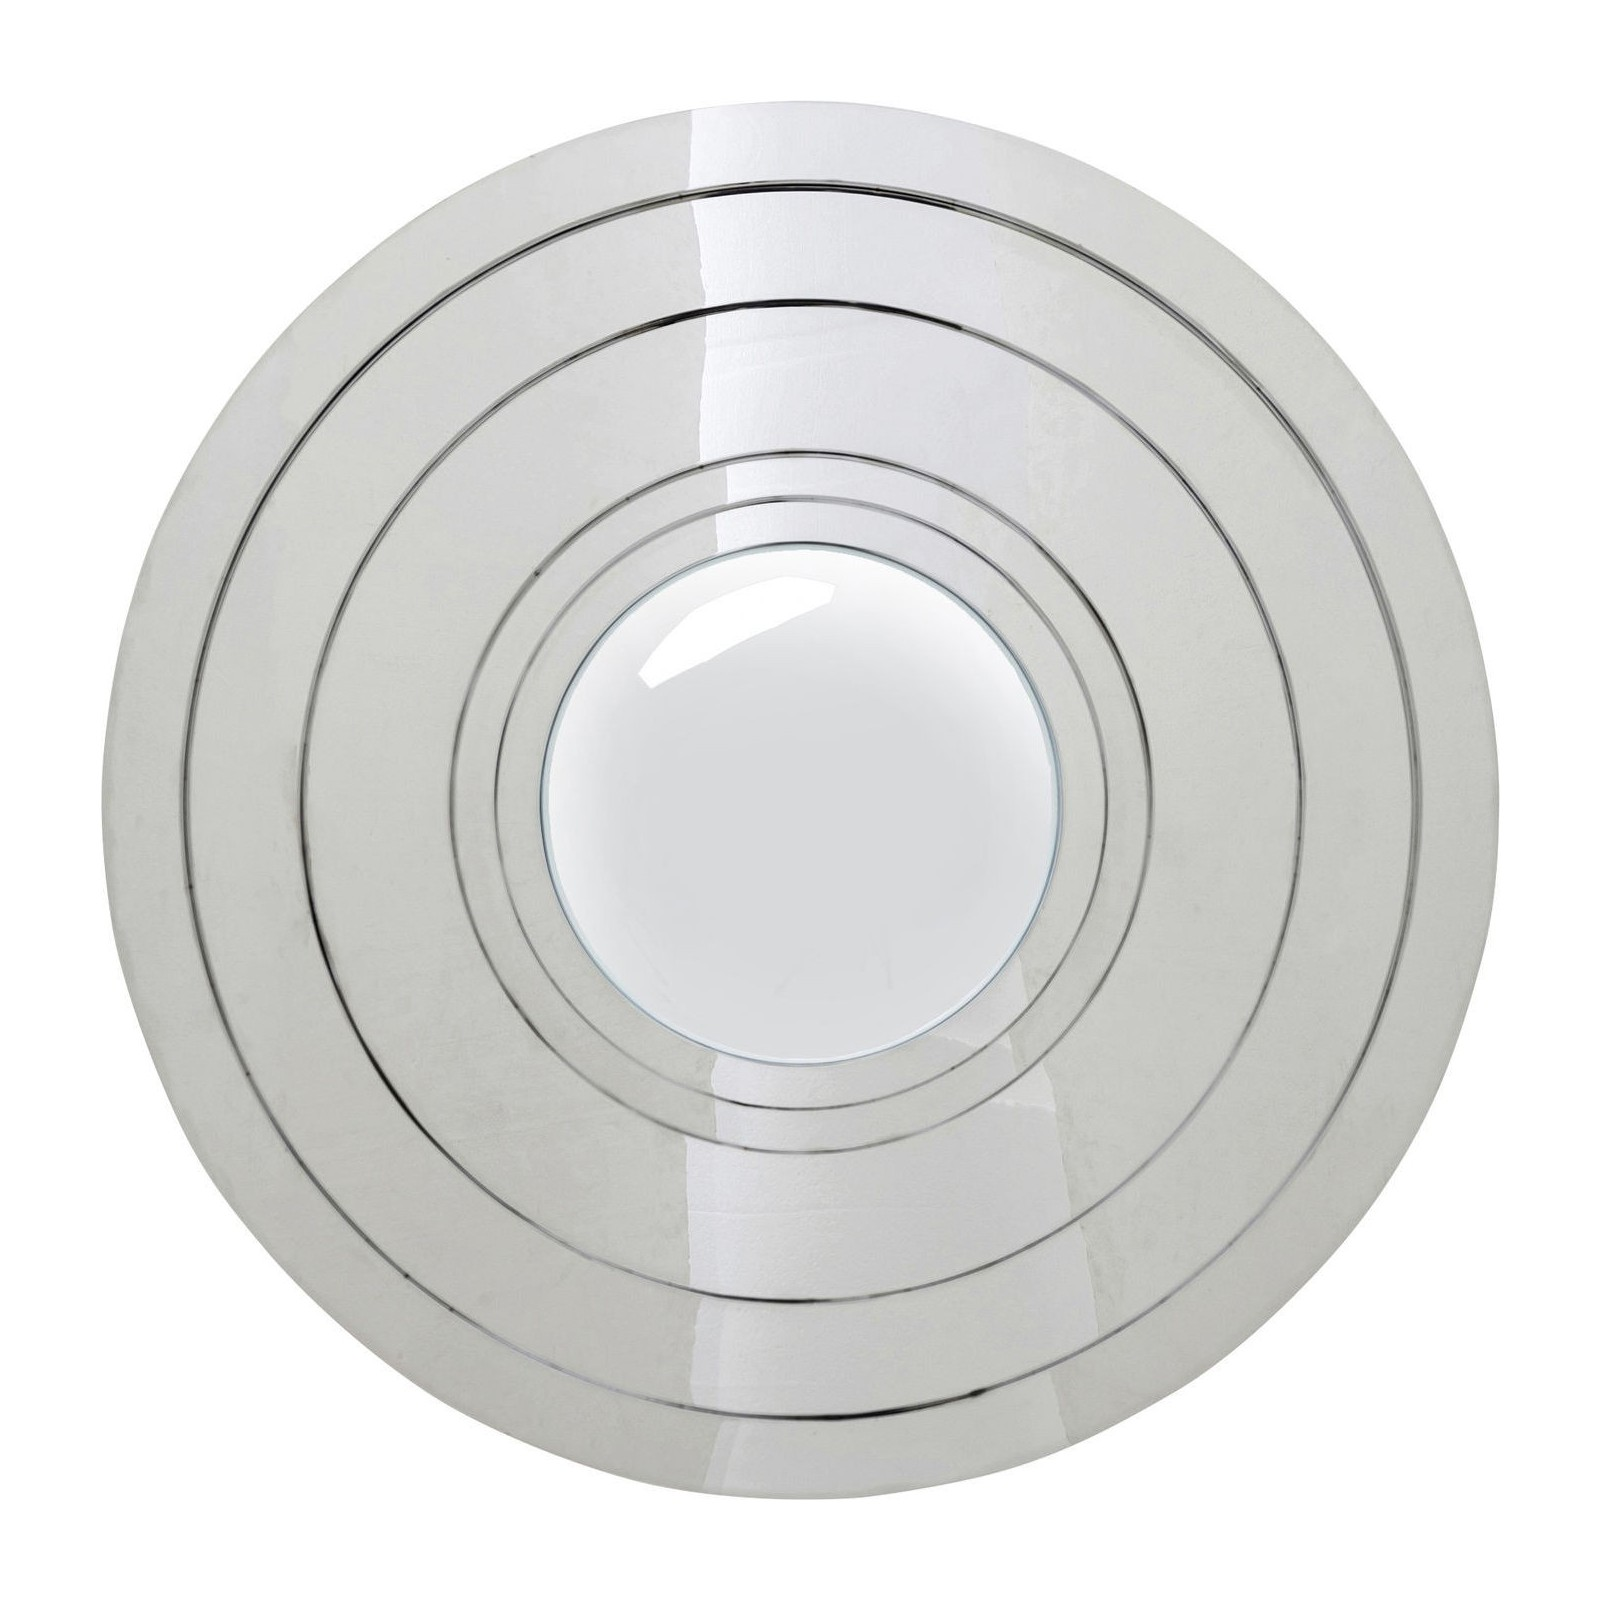 Miroir steel step argent rond 80 cm kare design for Miroir design rond